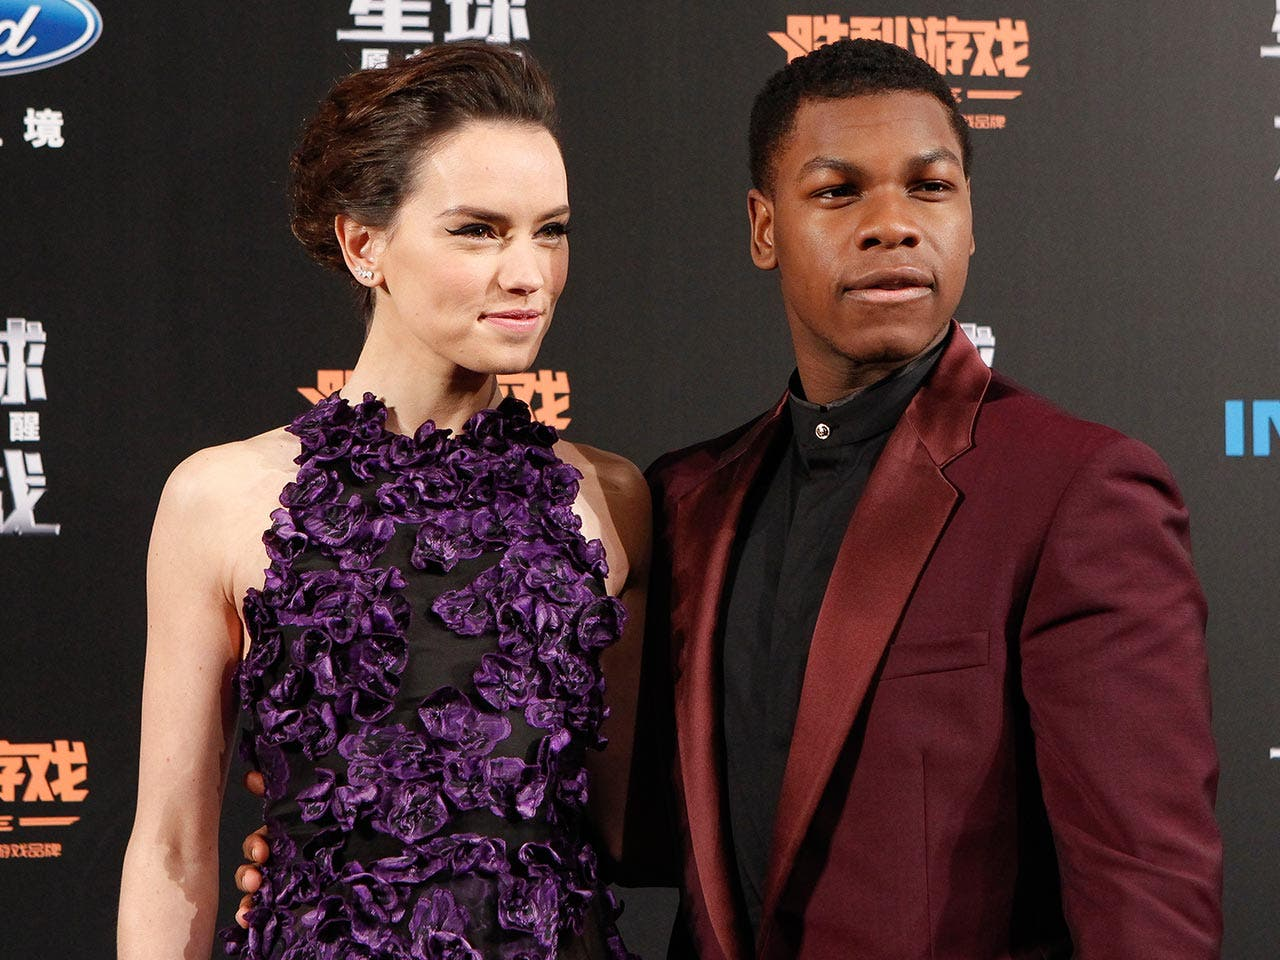 Daisy Ridley and John Boyega | STR/Getty Images